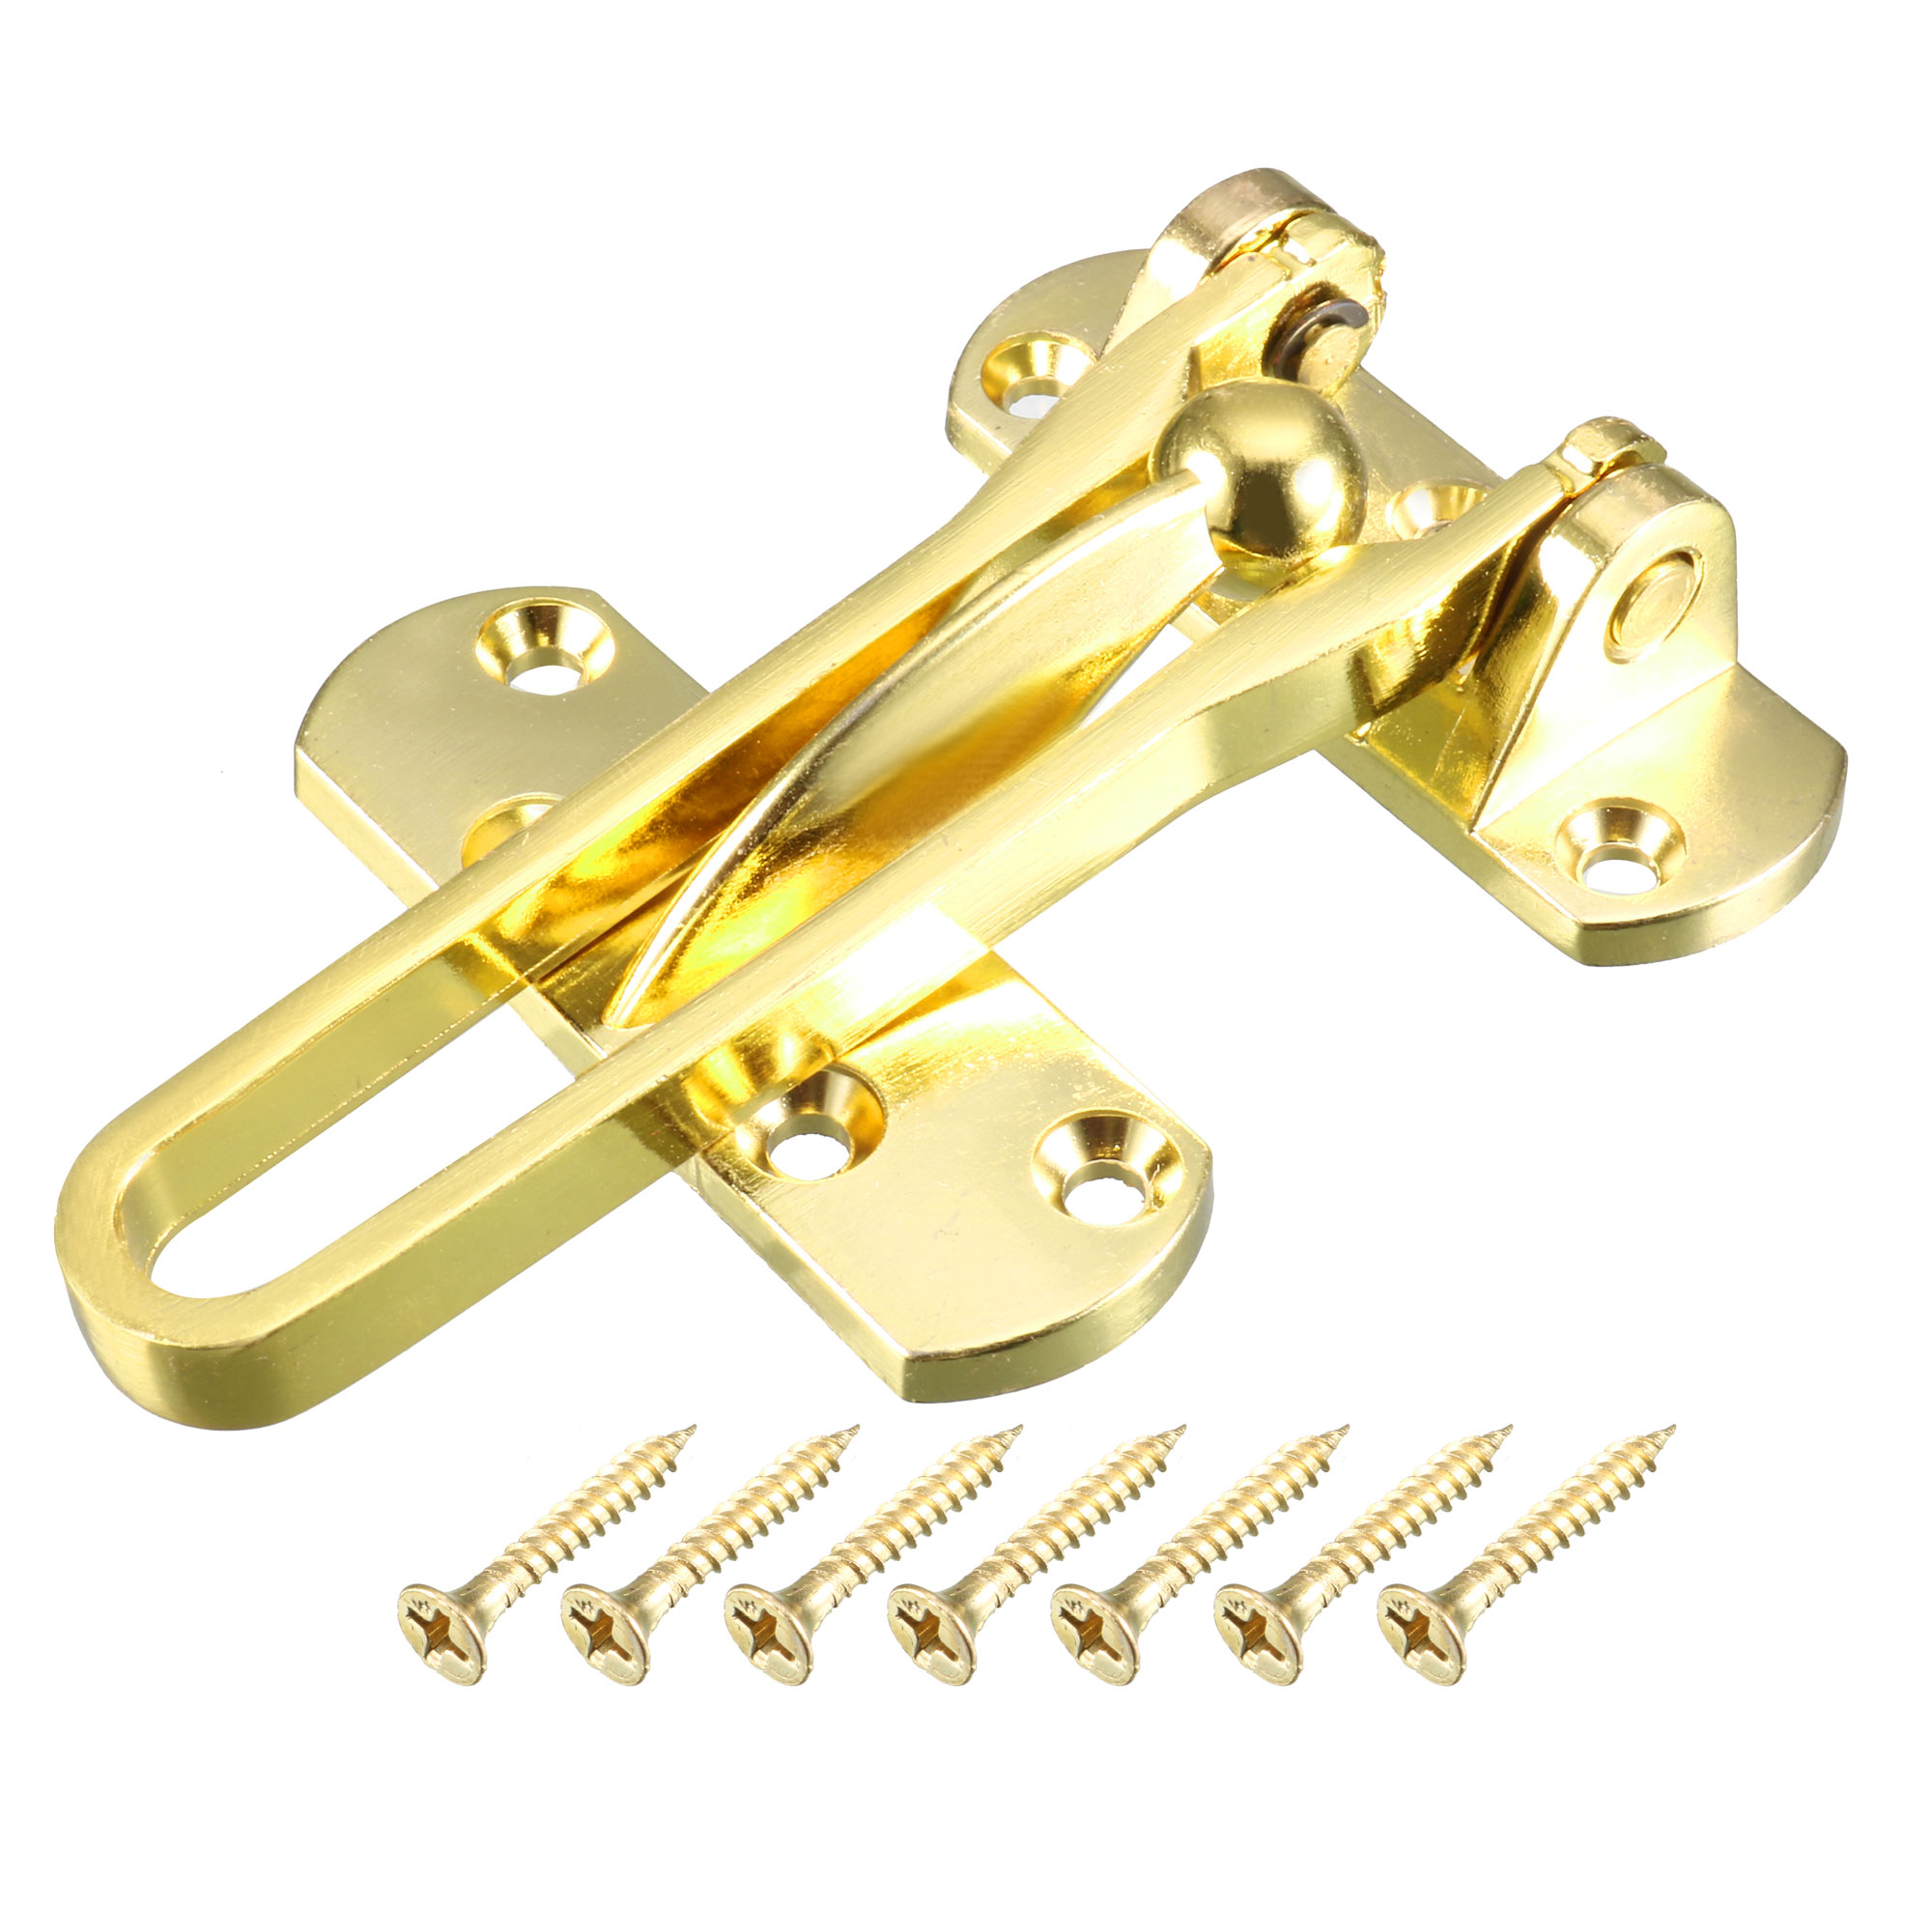 Household Door Restrictor Lock Catch Metal Safety Security Chain Latch Gold Tone